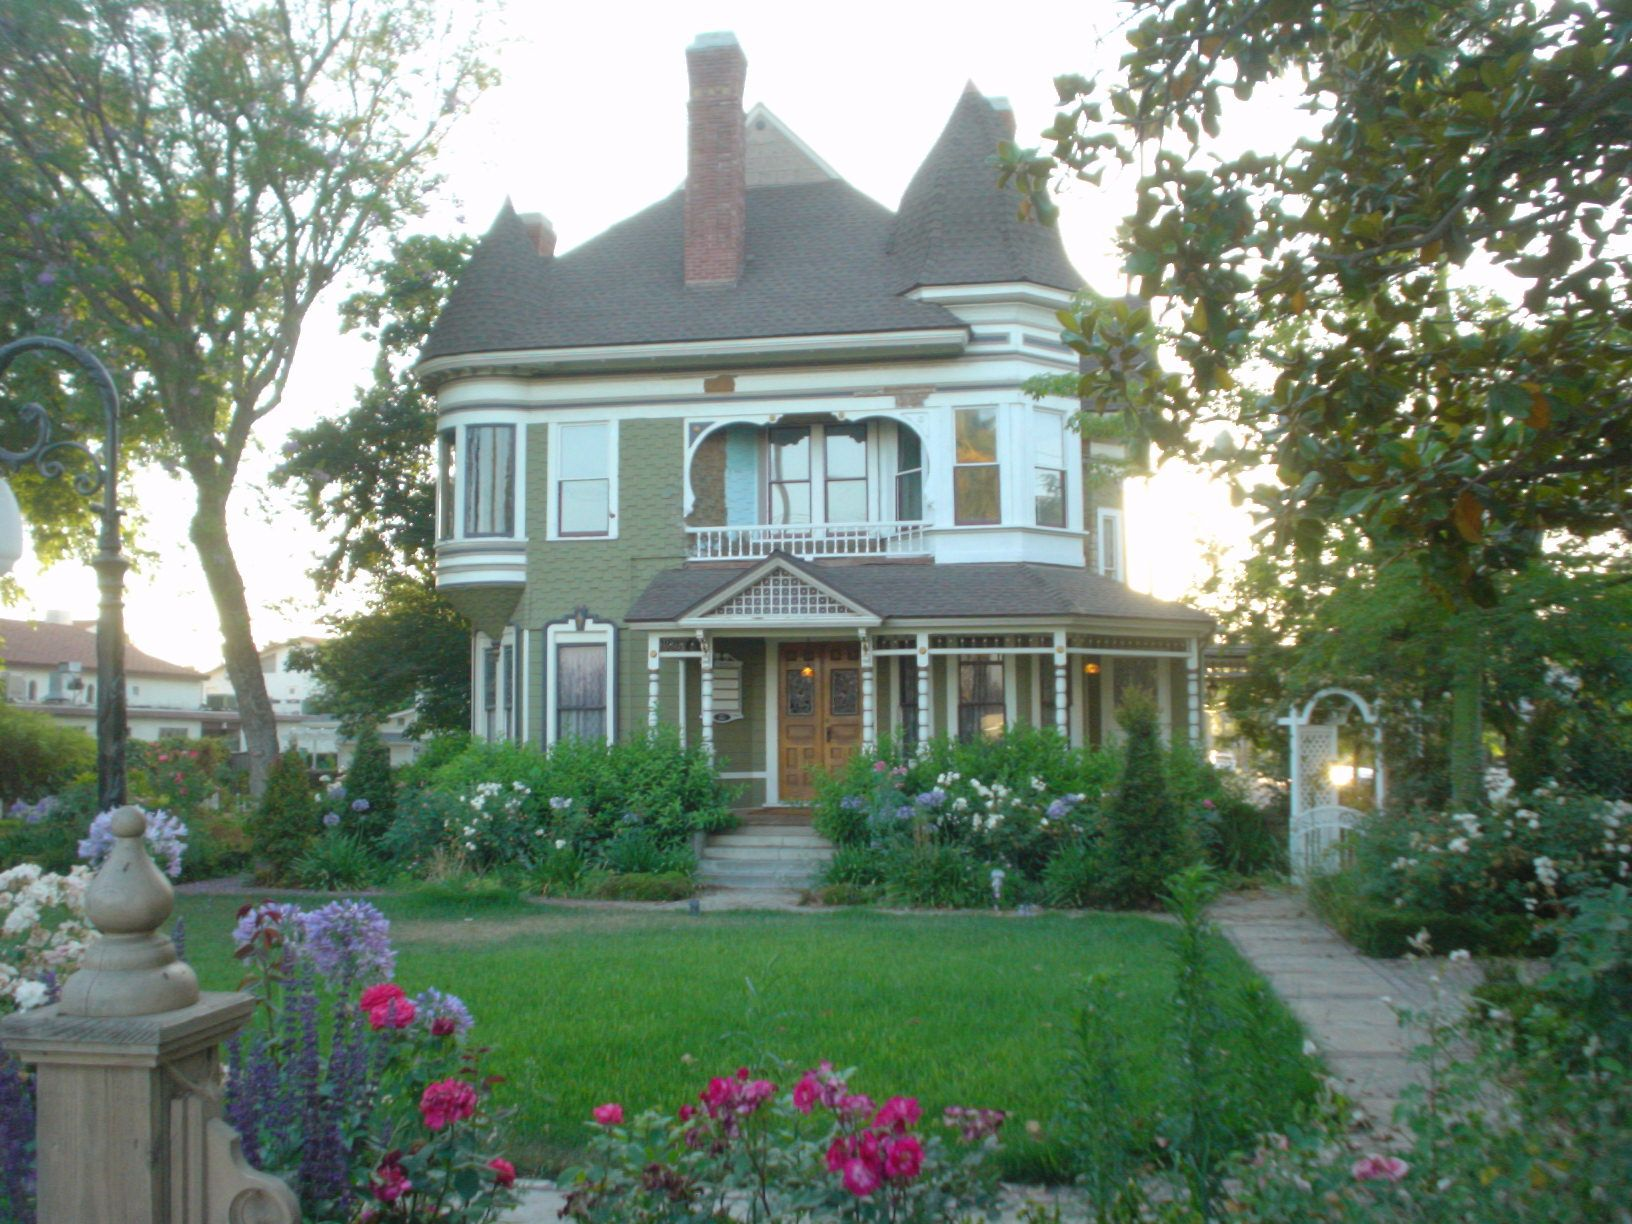 appearing in the 1870 s through 1910 queen anne style house plans appearing in the 1870 s through 1910 queen anne style house plans are an eclectic mix